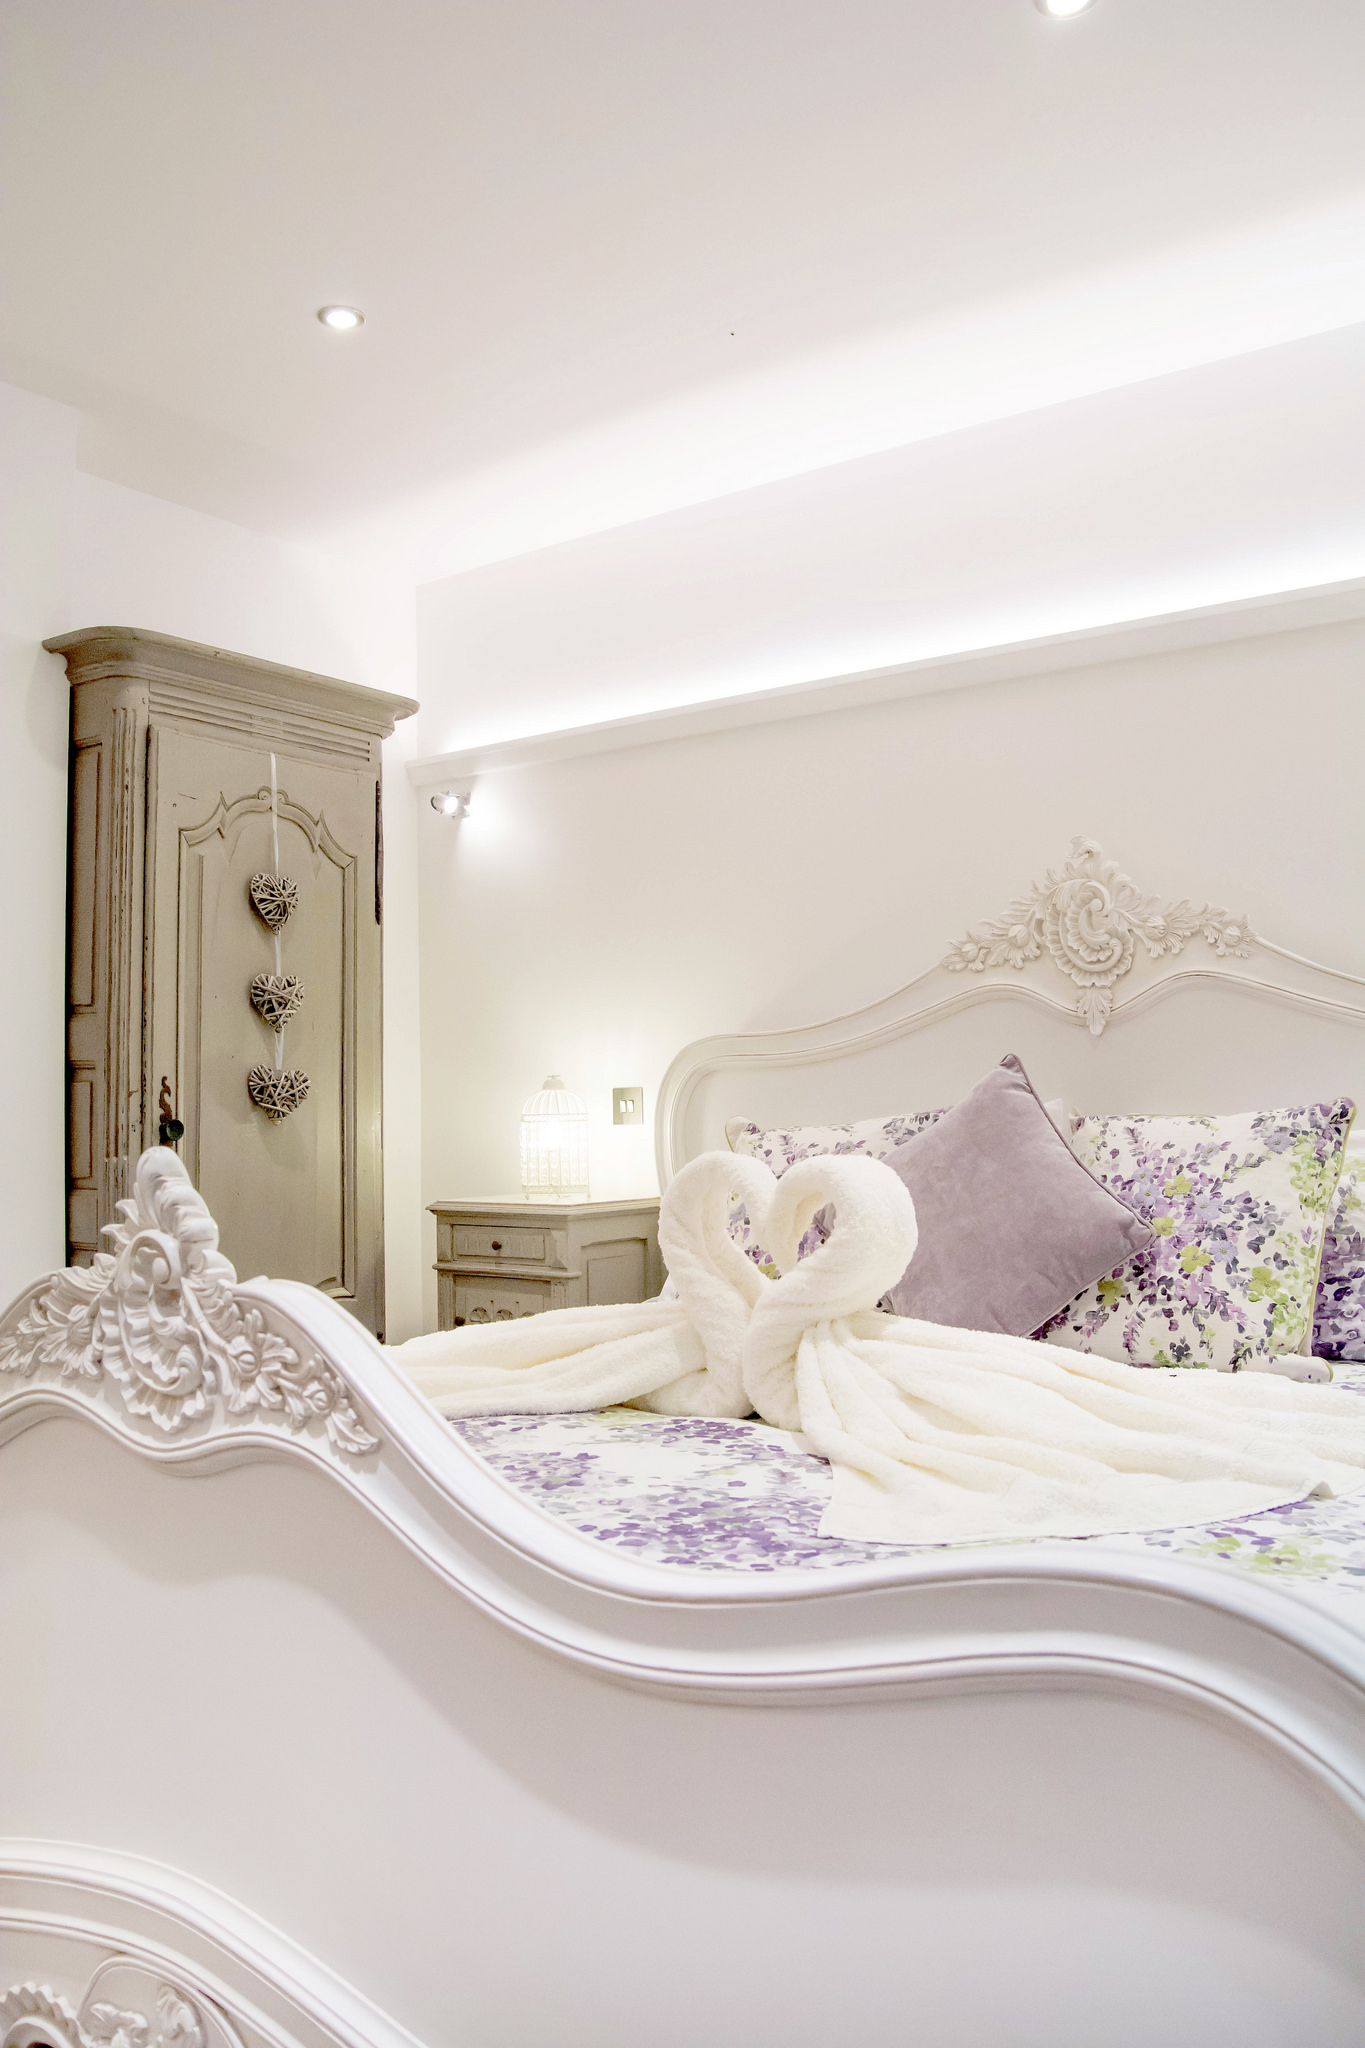 Carved French super-king size bed and ambient room lighting